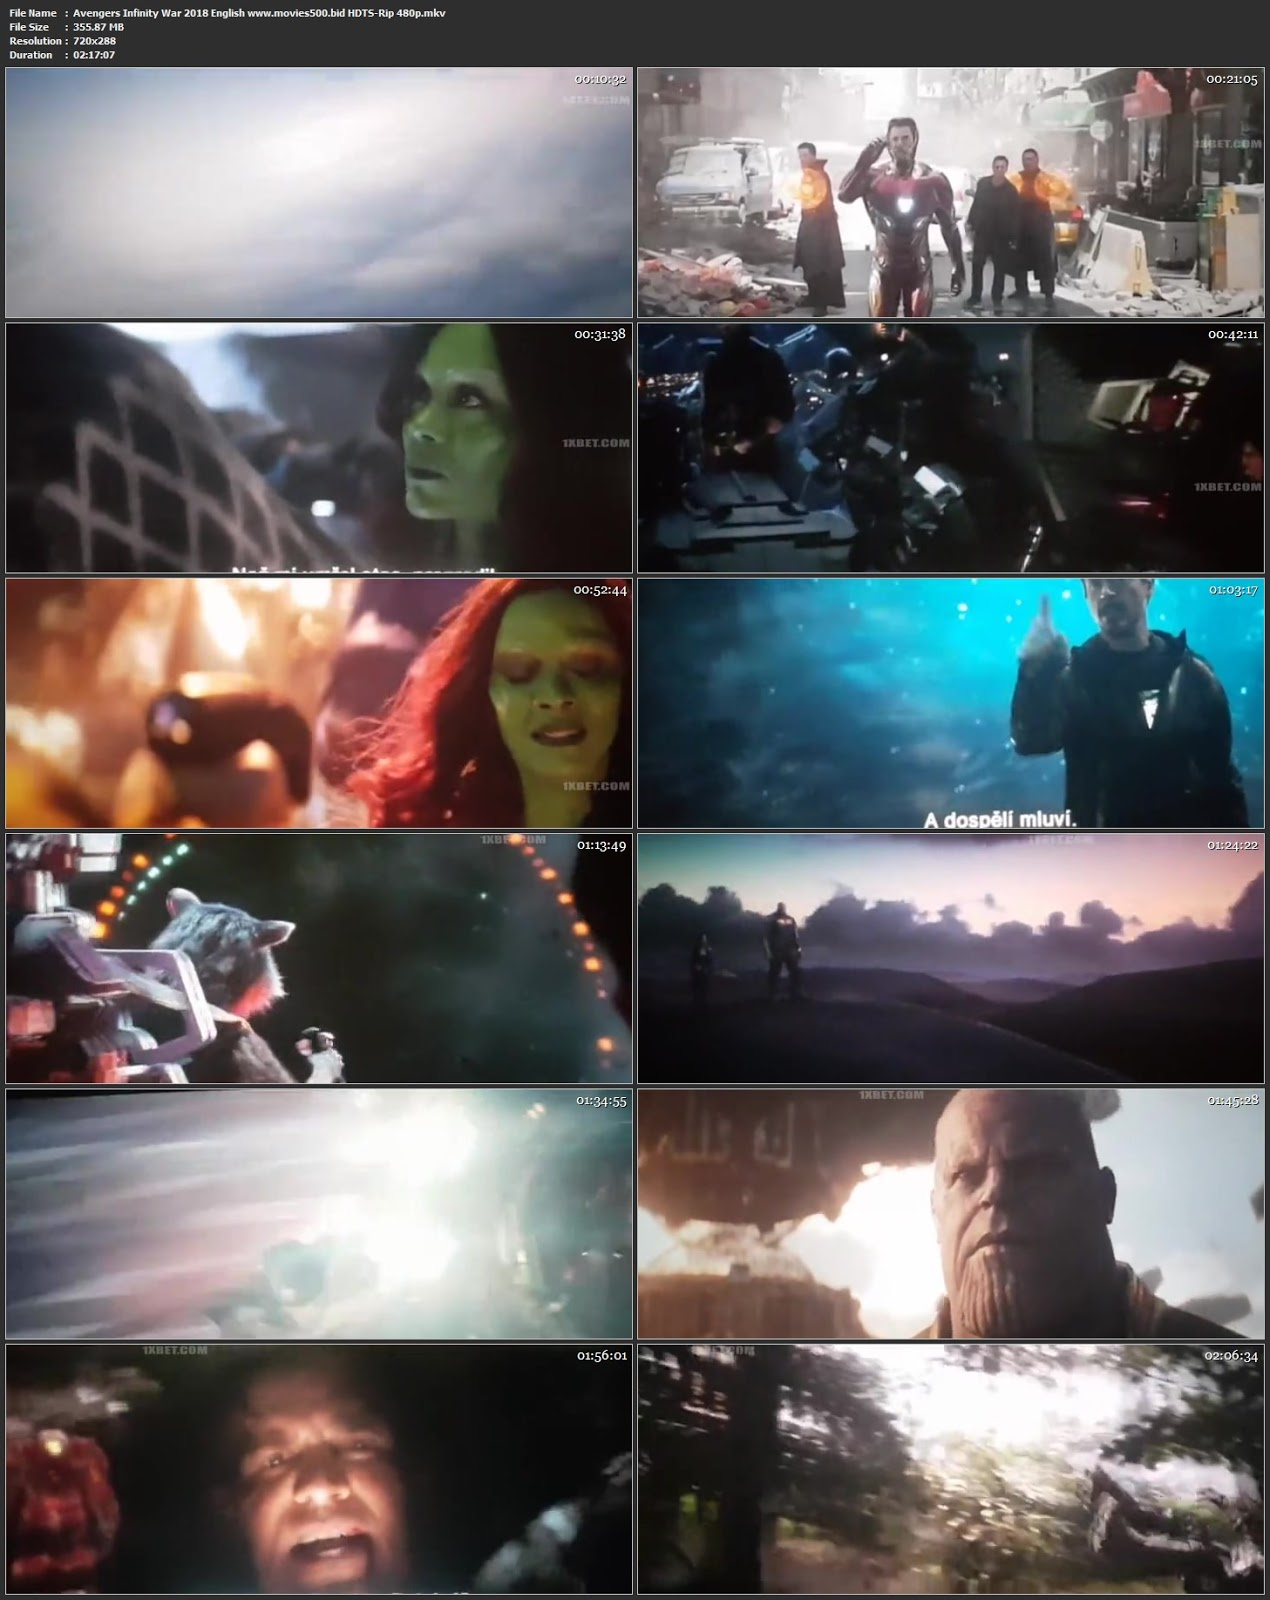 Avengers Infinity War 2018 Hollywood 300MB HDTSRip 480p at gileadhomecare.com